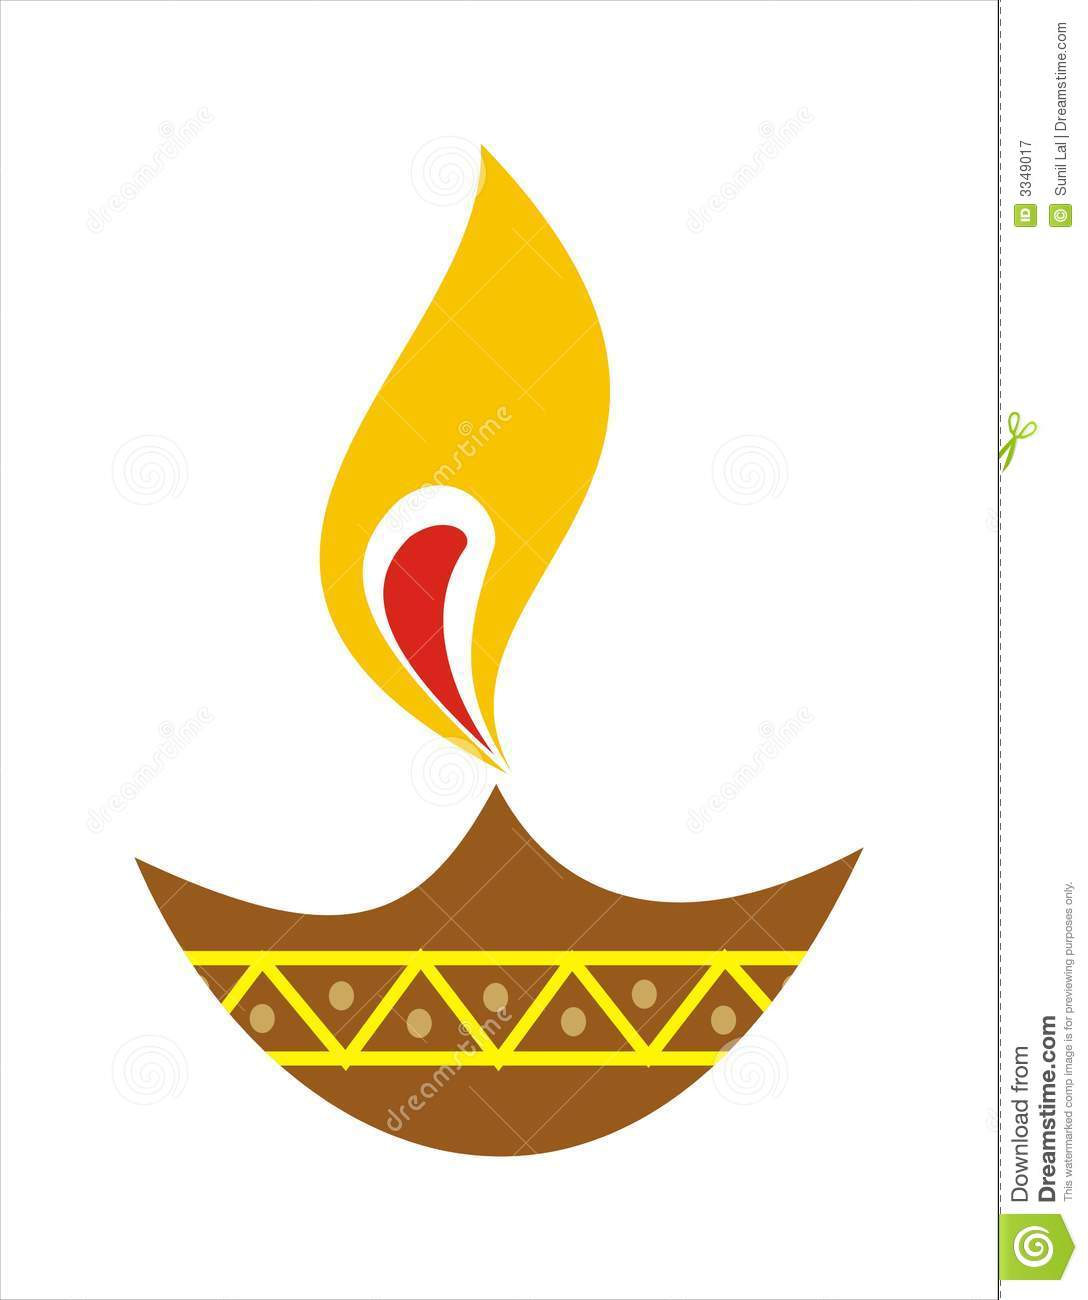 Oil Lamp Clipart Black And White.